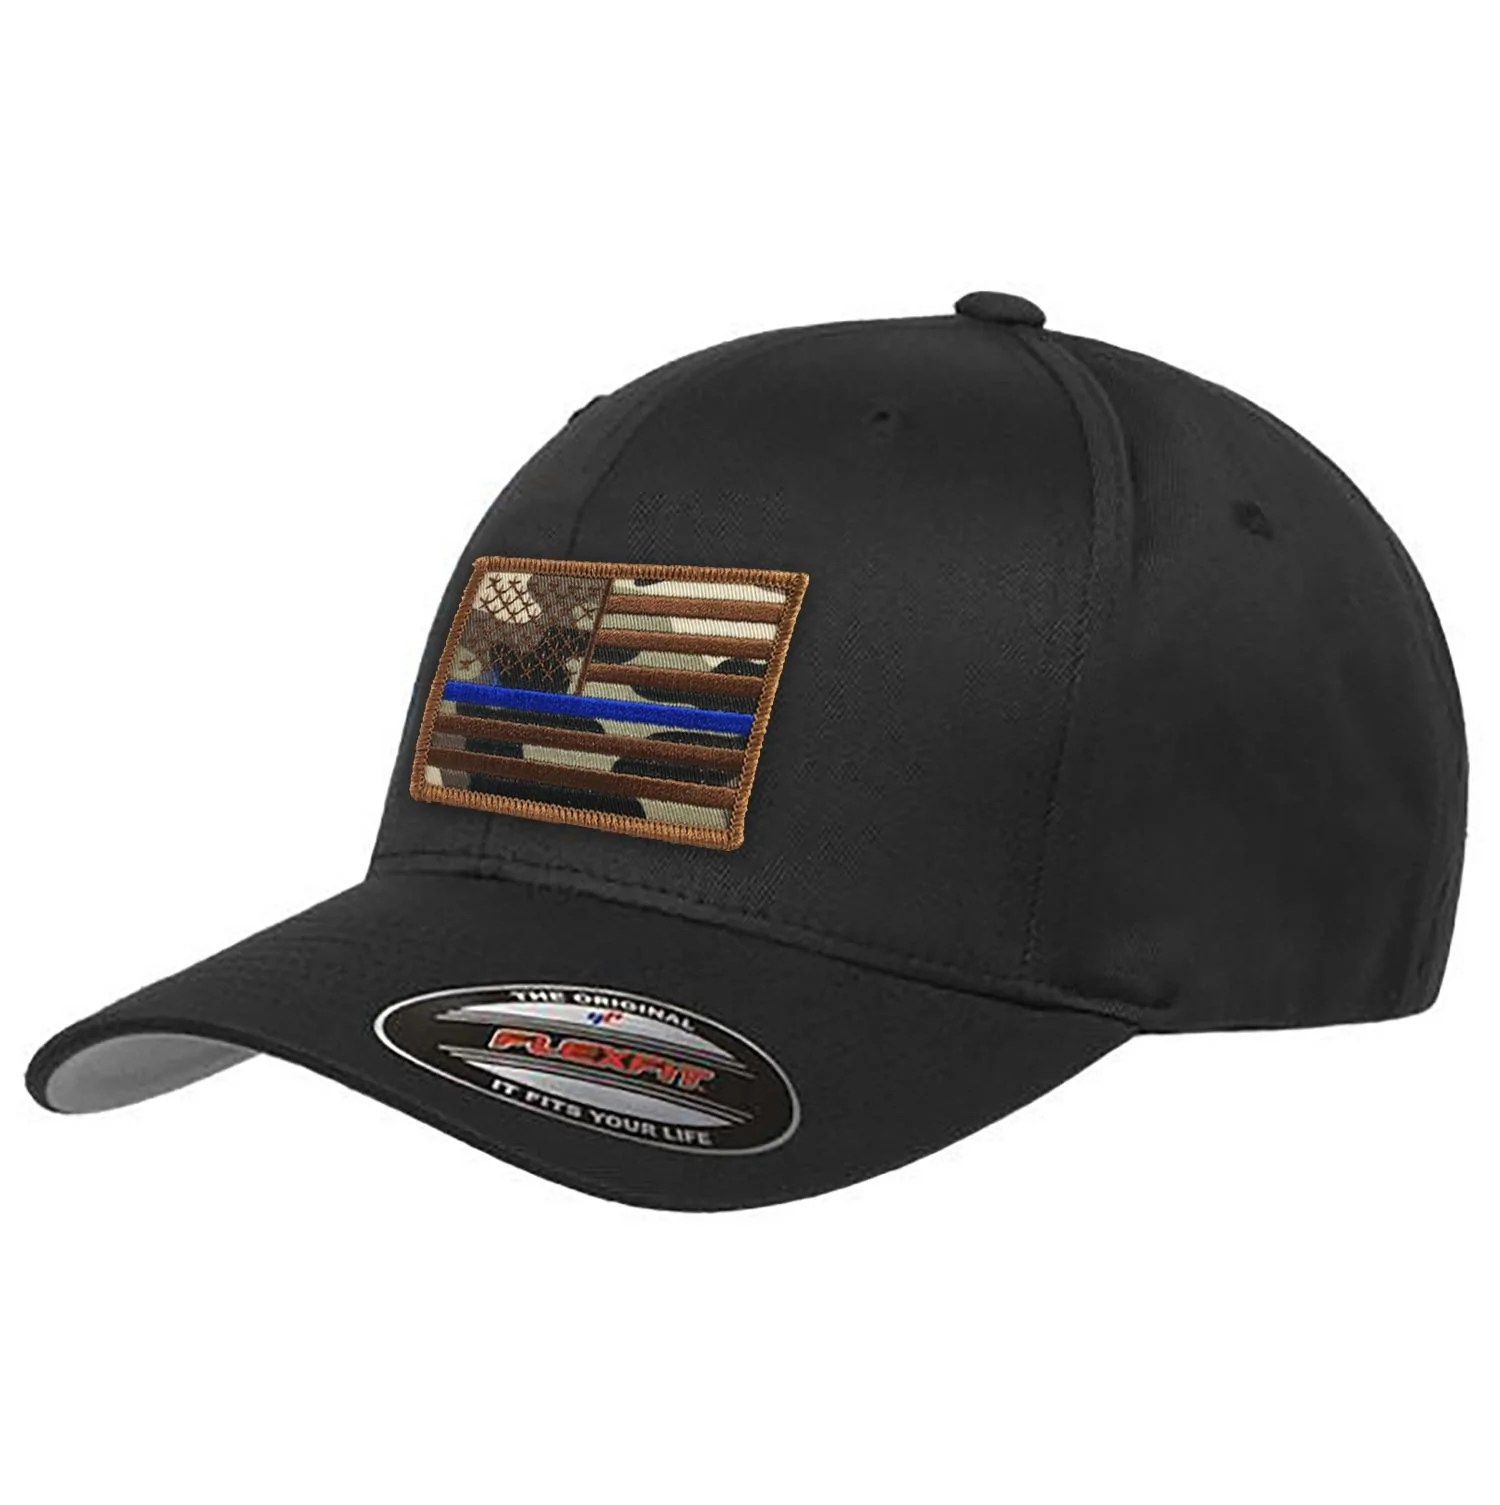 23f4e0bc964 Thin Blue Line And Red Flag Hats - imgUrl